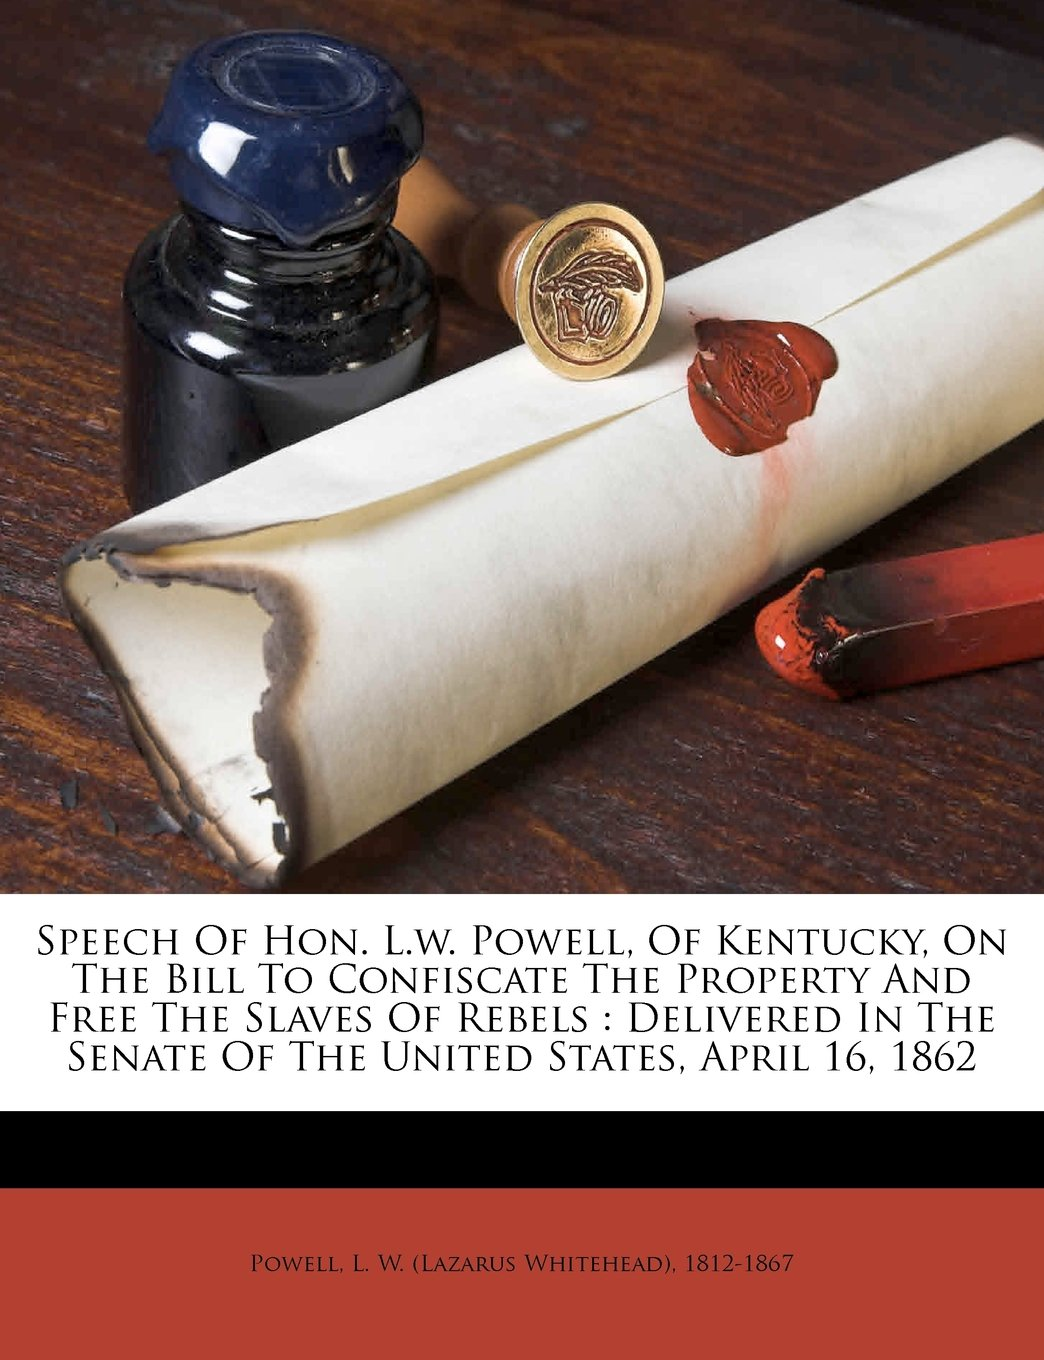 Download Speech Of Hon. L.w. Powell, Of Kentucky, On The Bill To Confiscate The Property And Free The Slaves Of Rebels: Delivered In The Senate Of The United States, April 16, 1862 pdf